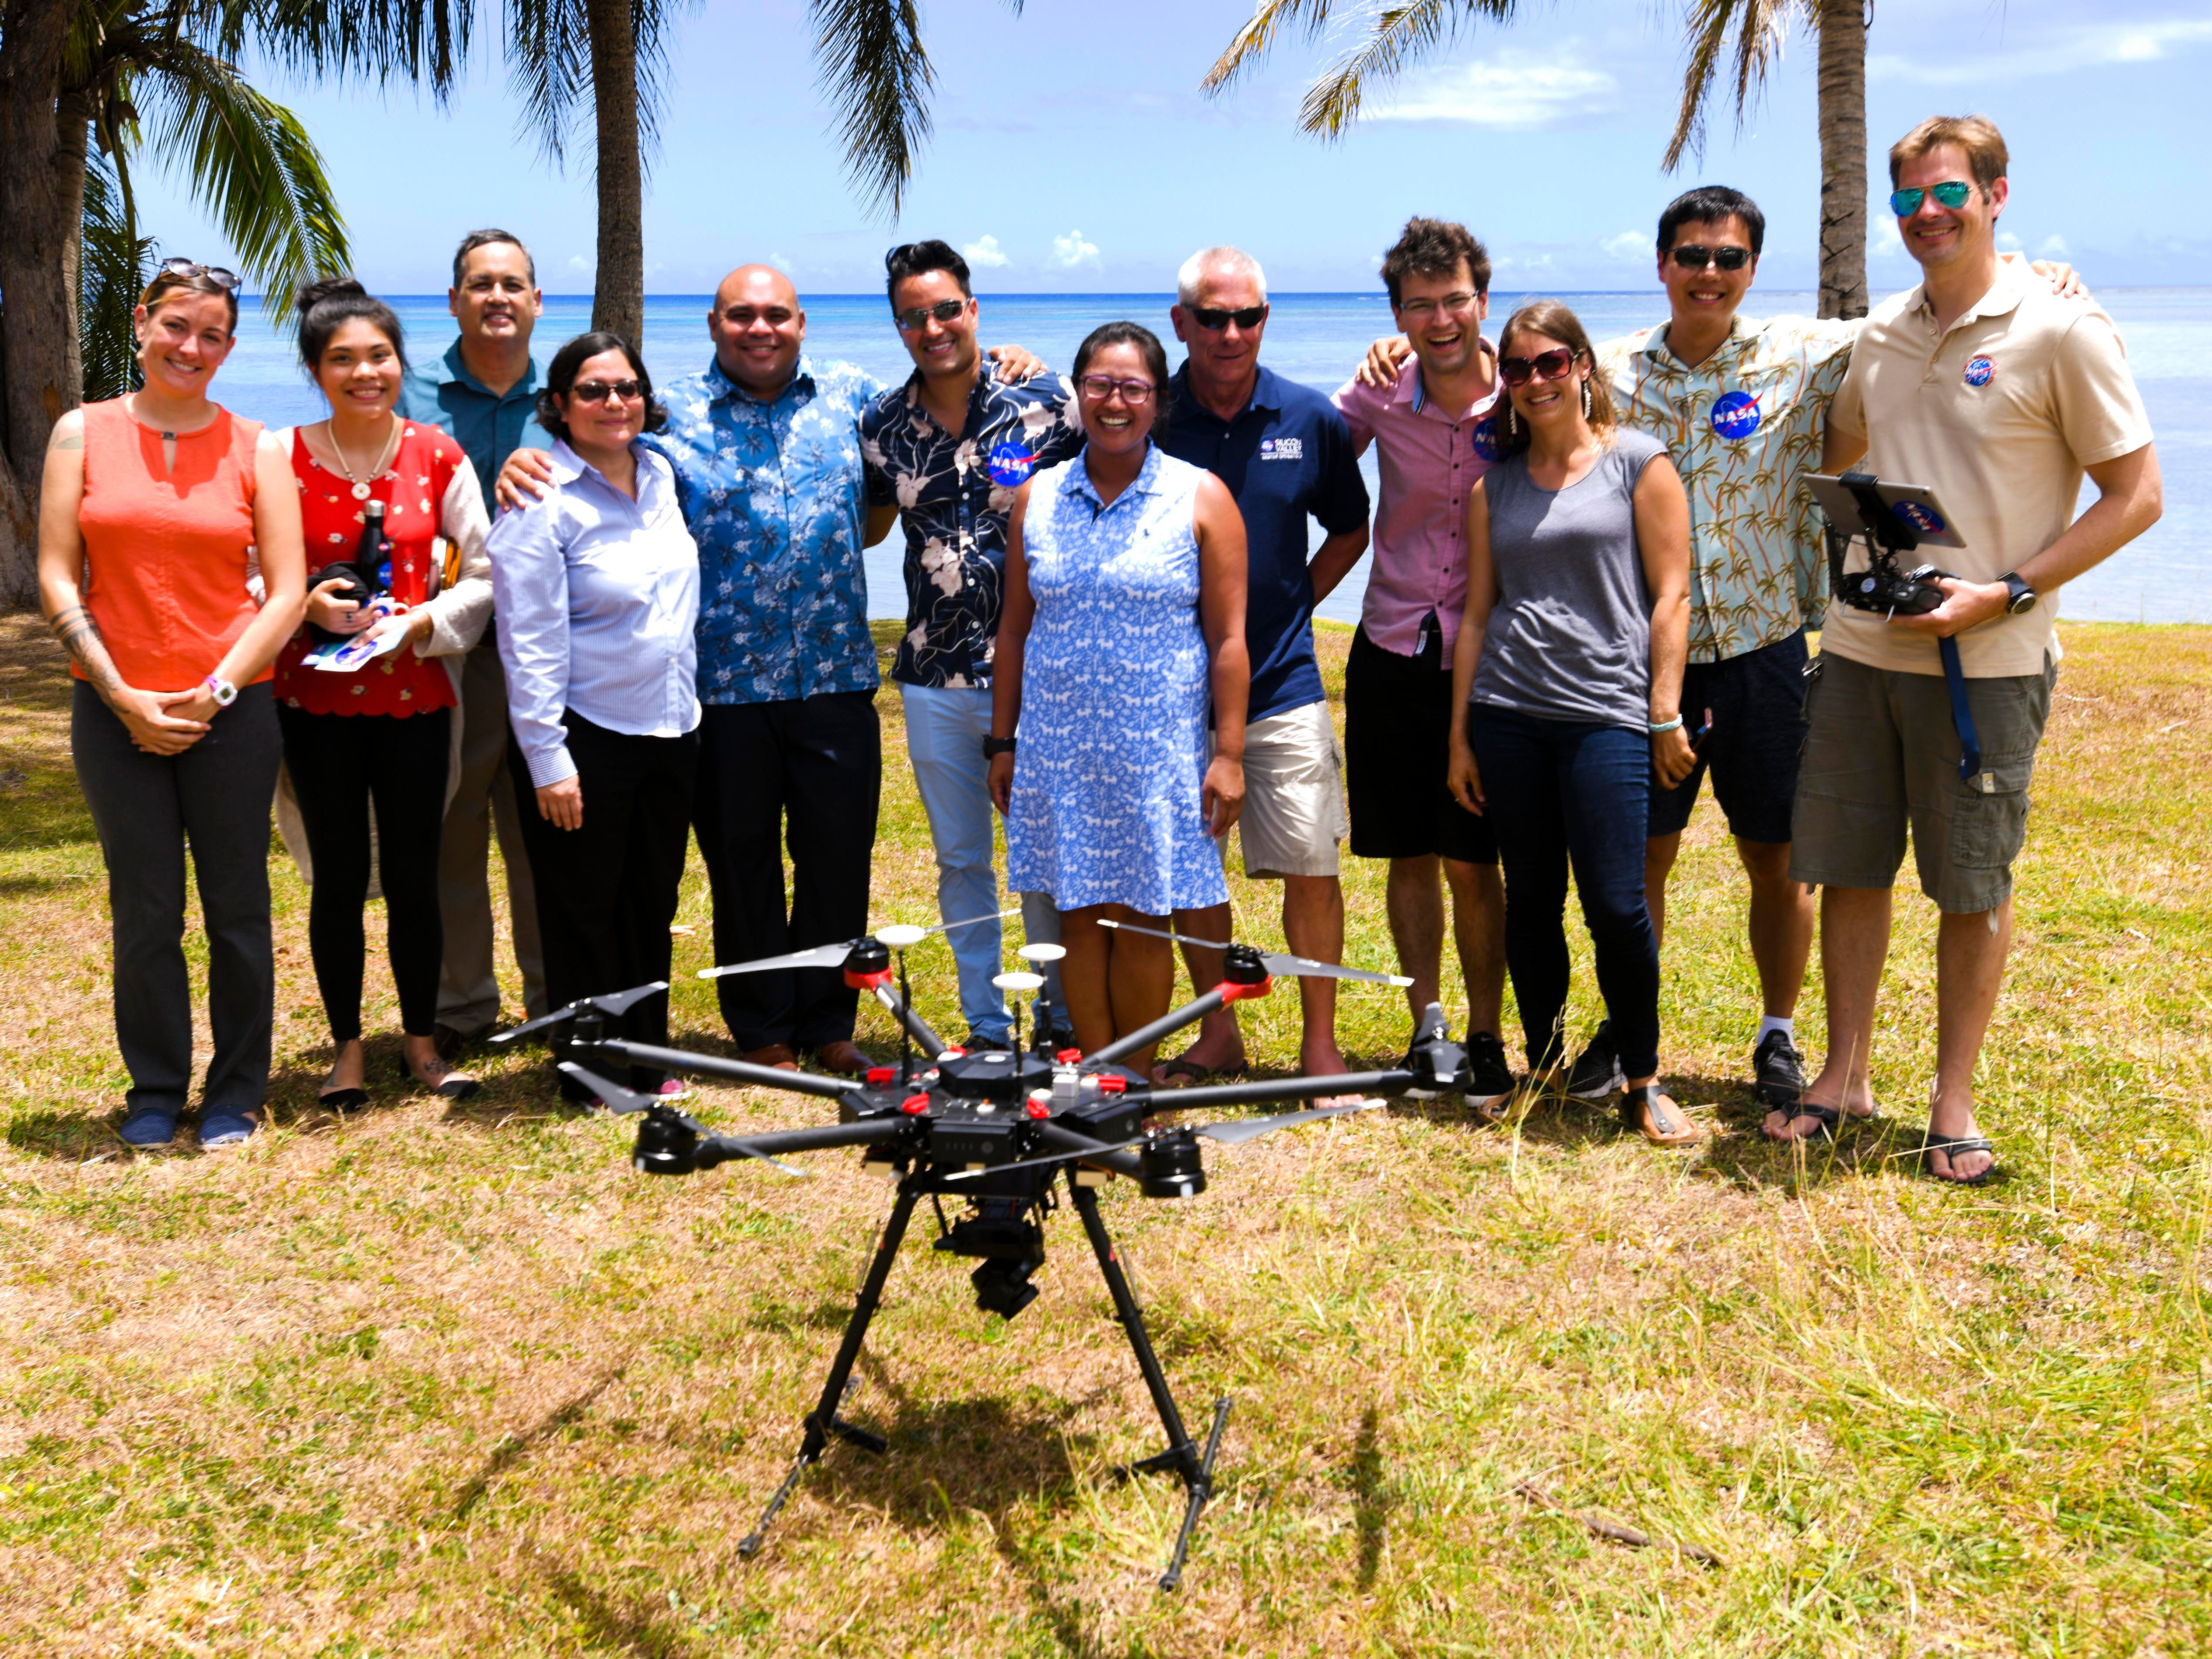 Researchers from the University of Guam's Pacific Islands Climate Adaptation Science Center and NASA's Lab for Advance Sensing Earth Science Division join Lt. Gov. Josh Tenorio and others for a photo with NASA's unmanned aerial vehicle at Tepungan Beach Park, near Fisheye Marine Park in Piti, on Wednesday, May 15, 2019. The drone, using Fluid Lensing technology developed by research scientist Ved Chirayath, has been able to map the underwater coral formations in the waters of Piti and Tumon from the air.